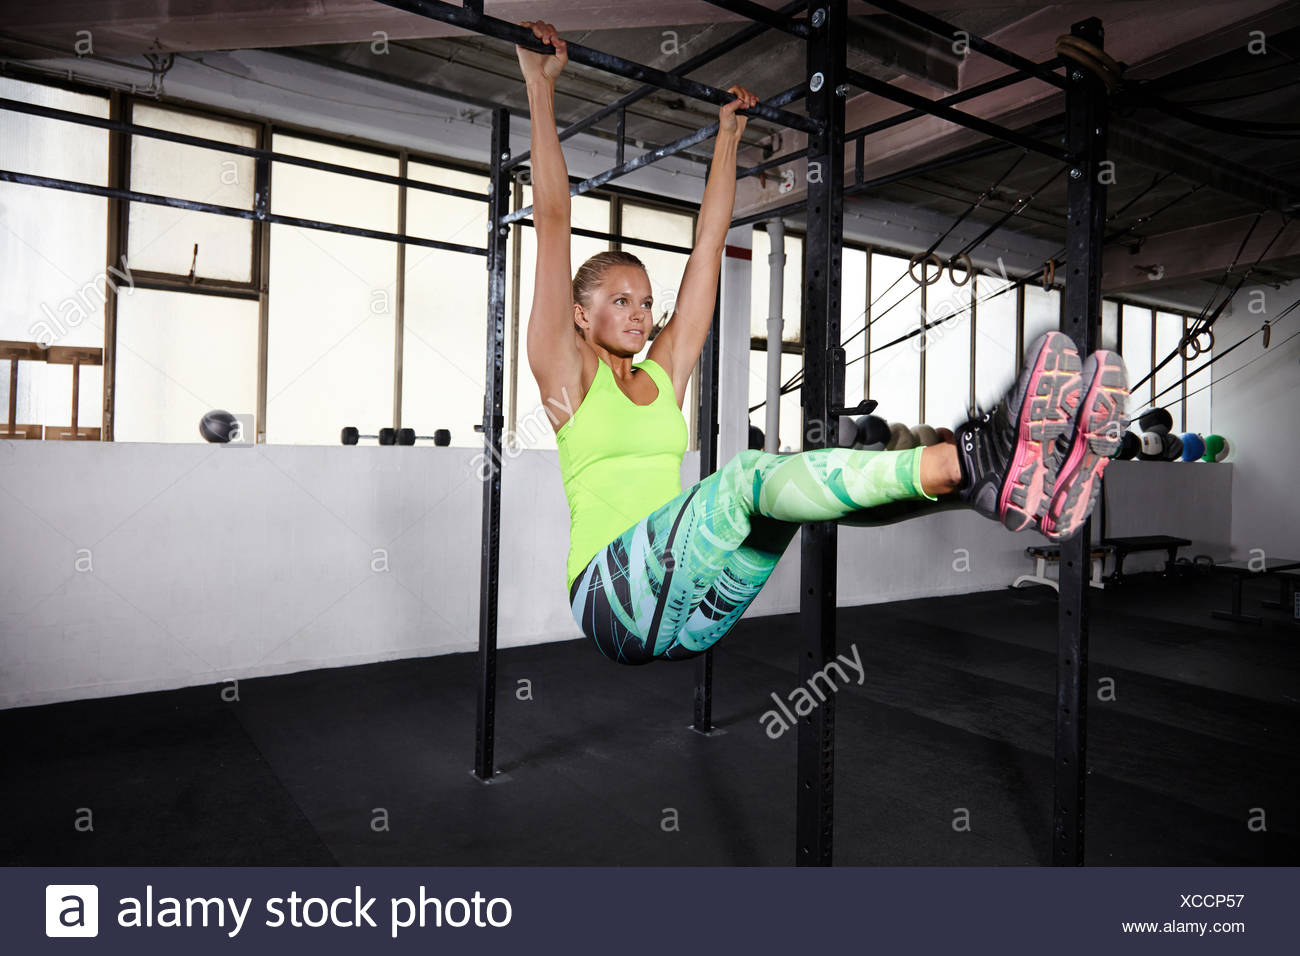 Young woman training on parallel bars in gym - Stock Image